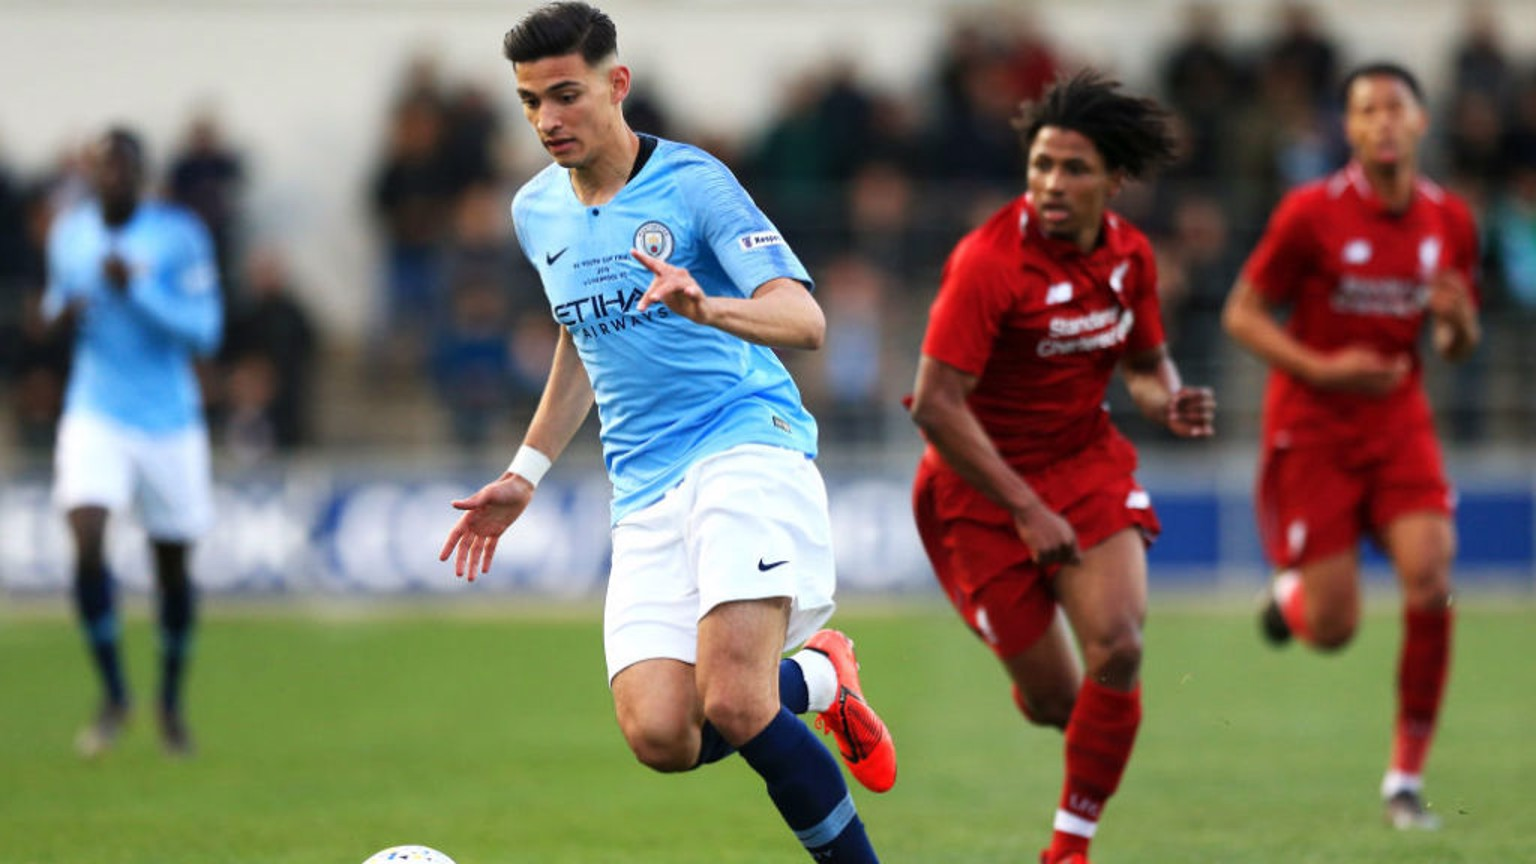 City U18s edged out in season finale